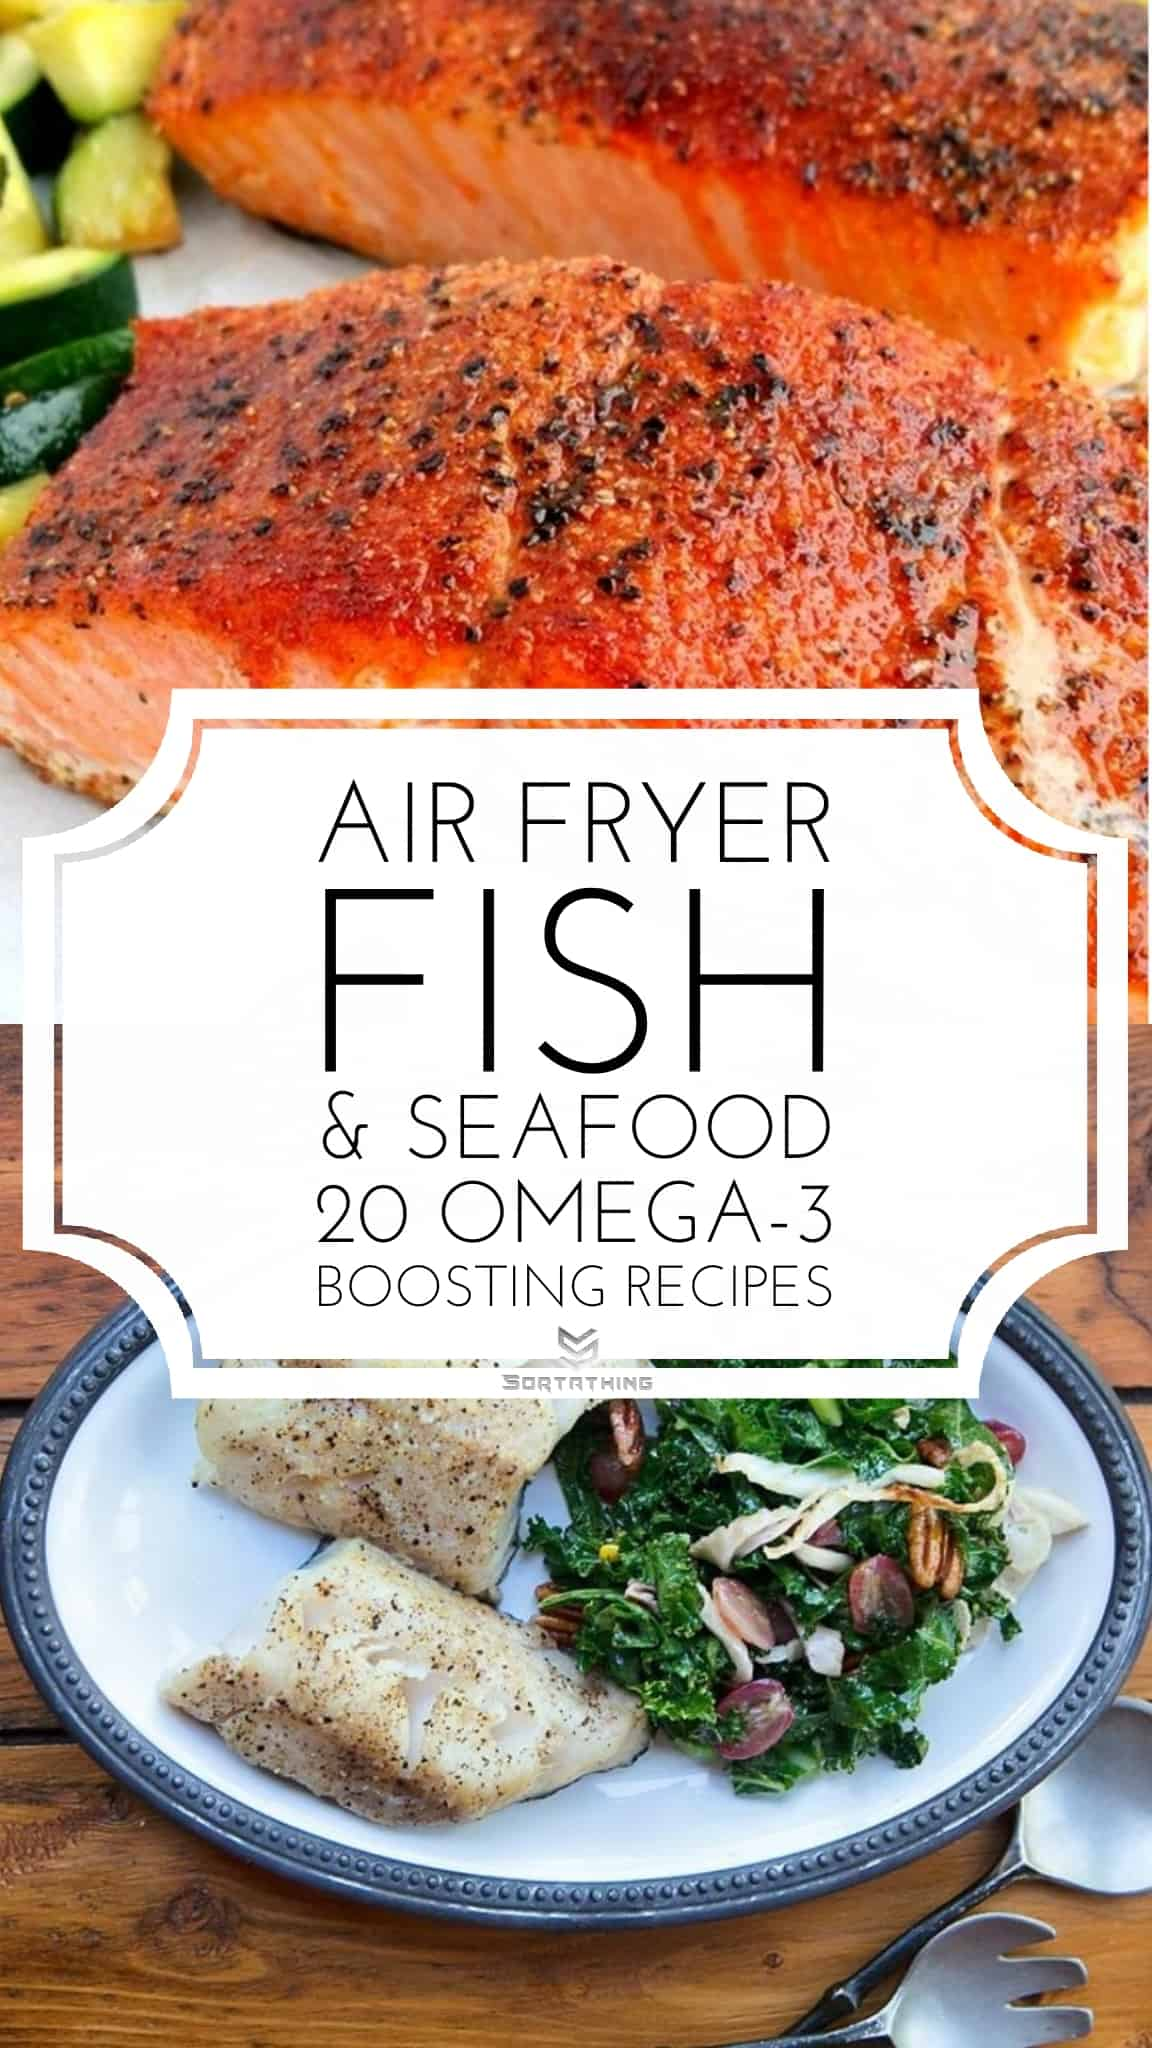 Perfect Air Fryer Salmon & Air Fryer Black Cod (Sablefish)